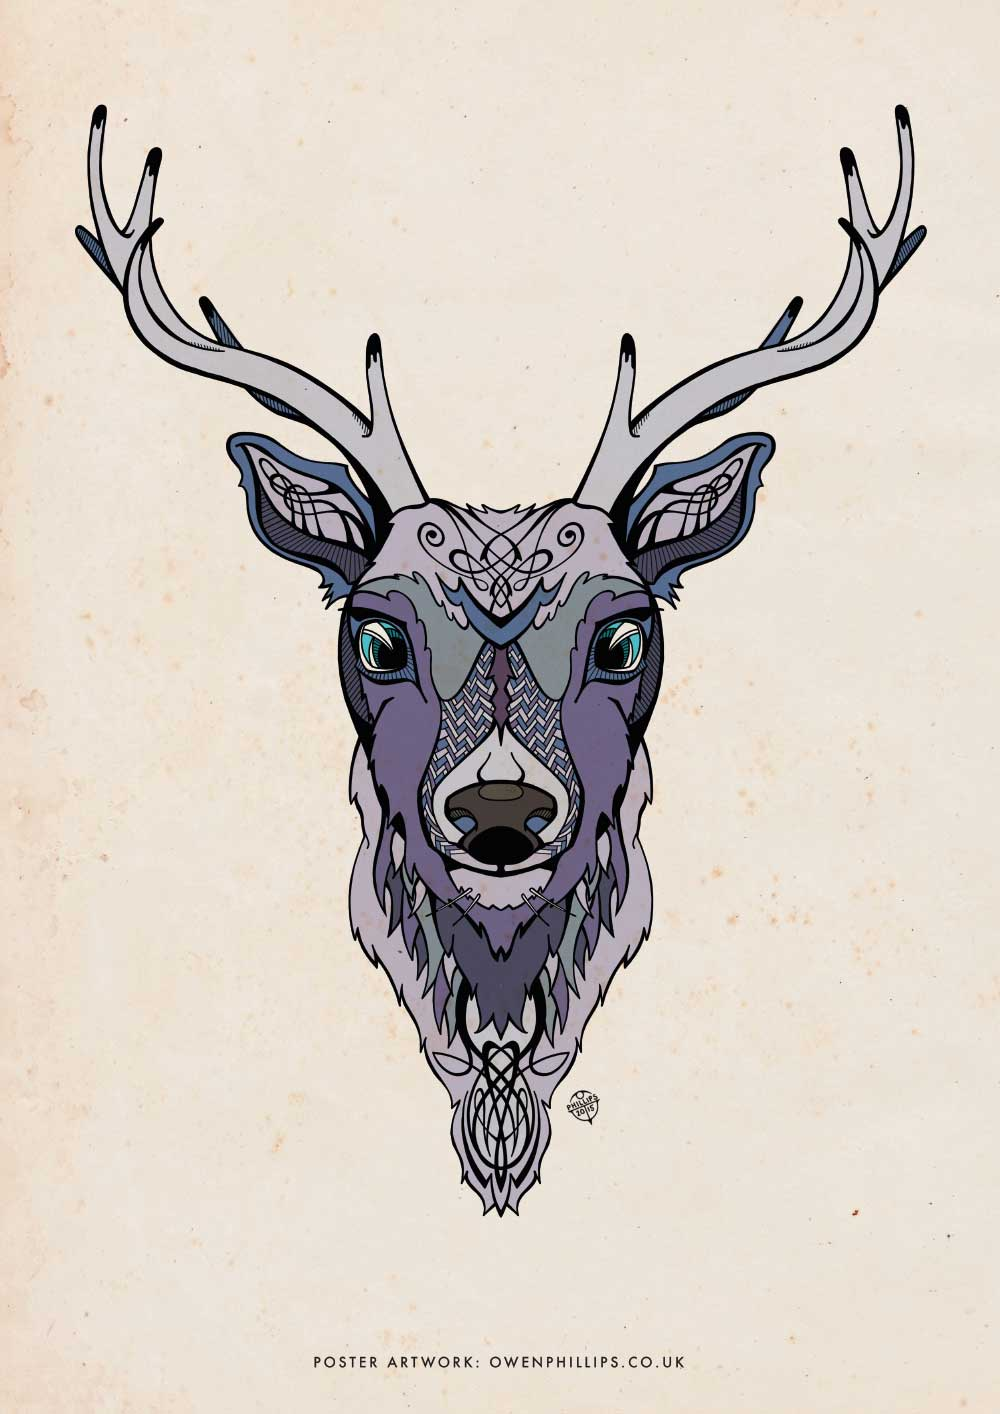 illustrated stag poster � owen phillips � creative design